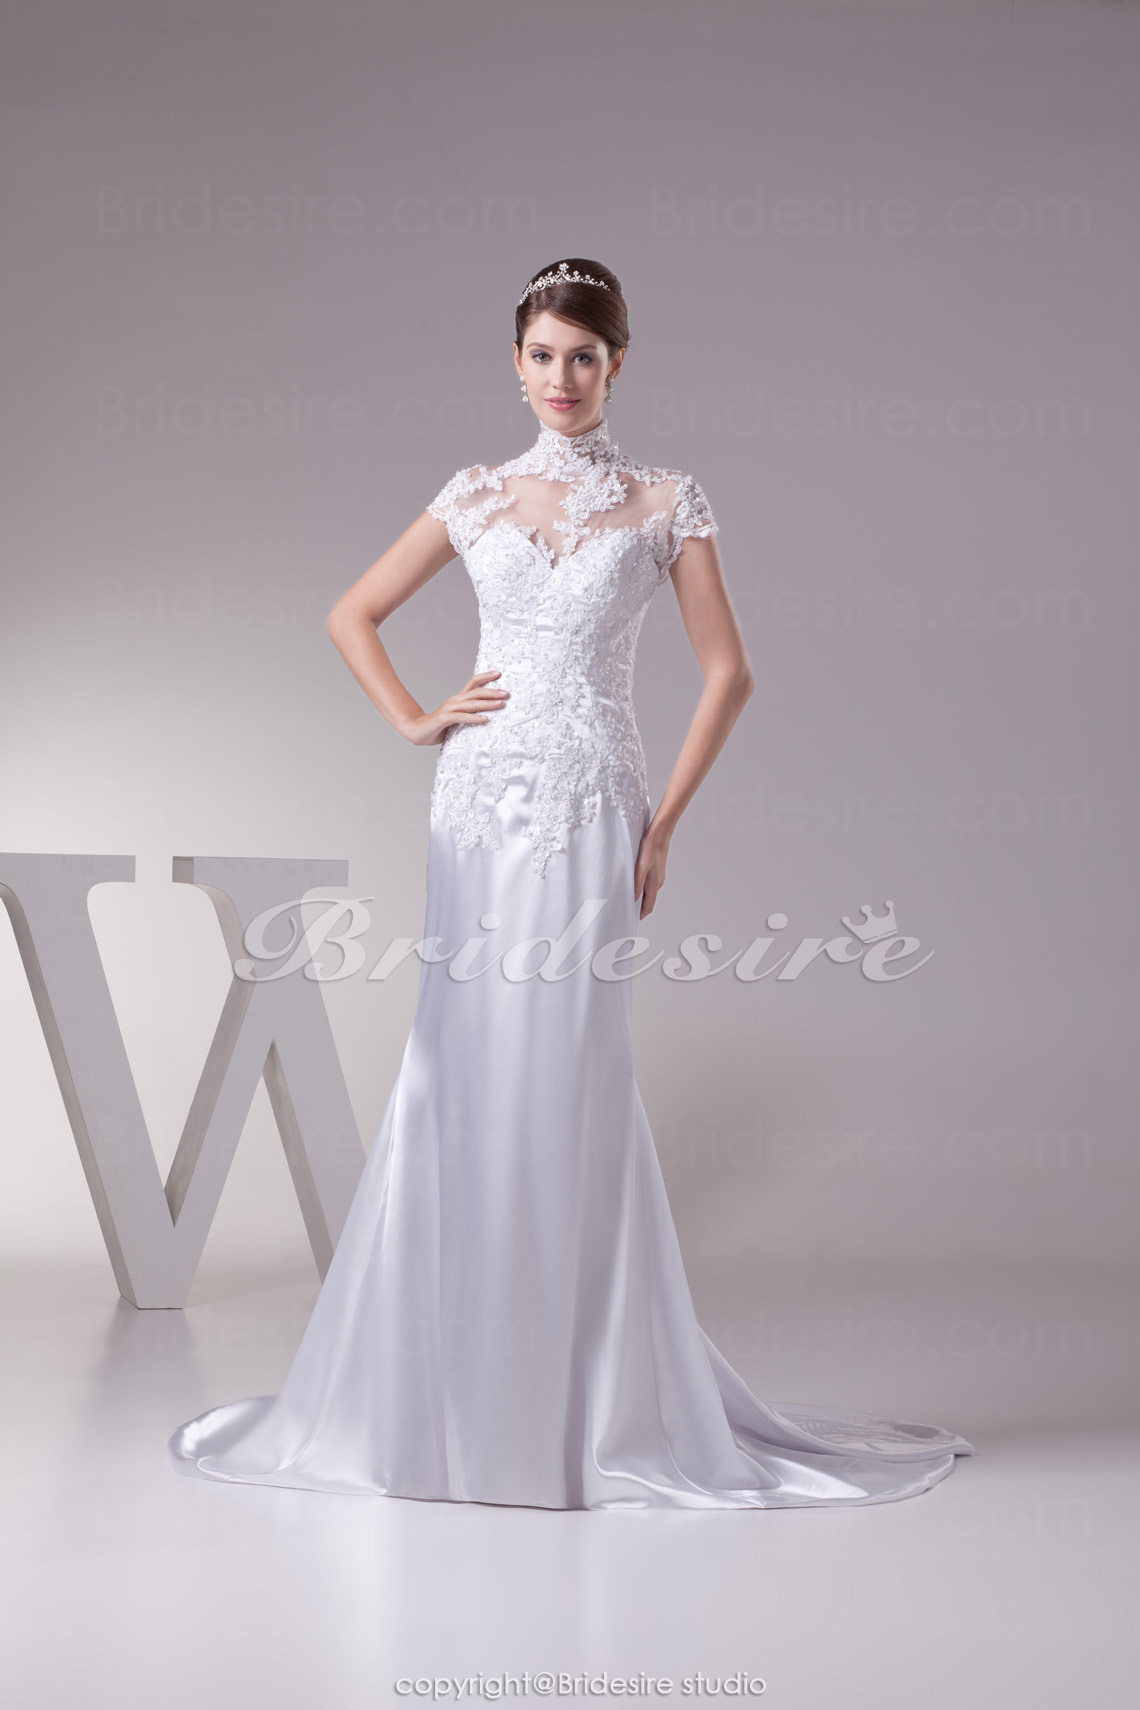 Sheath/Column High Neck Sweep Train Sleeveless Satin Wedding Dress